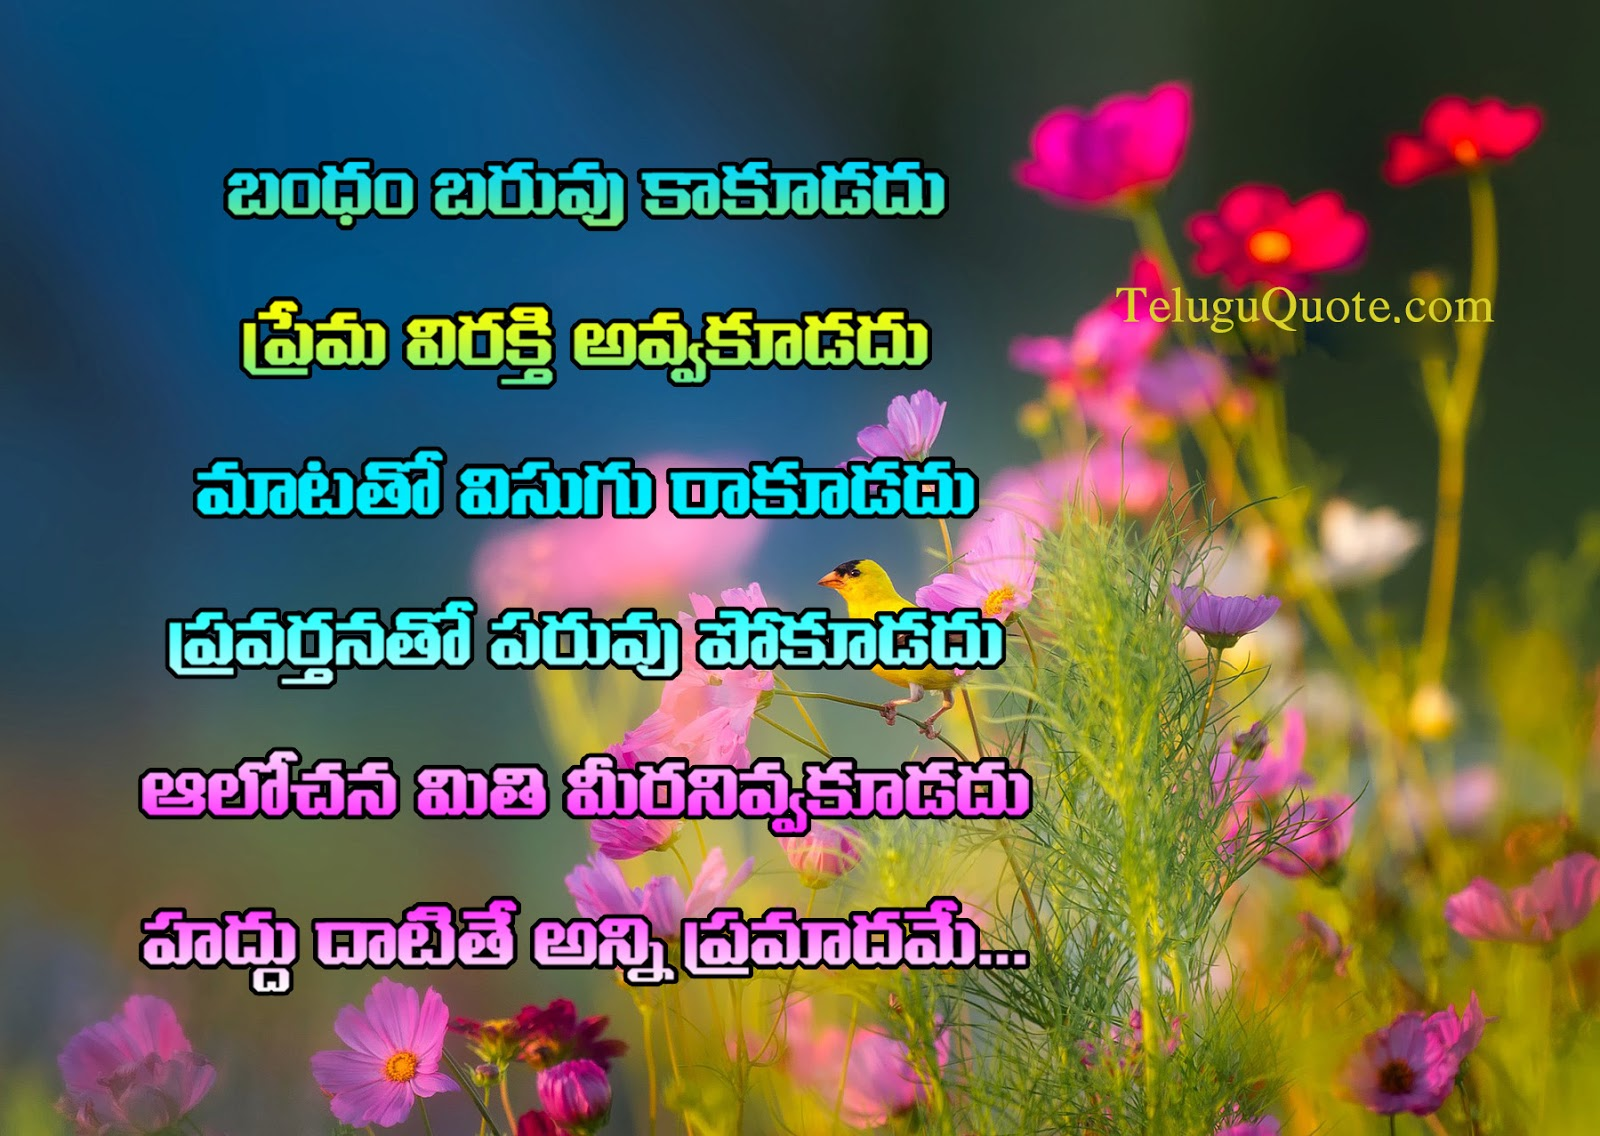 Telugu Best Motivational Quotes Images